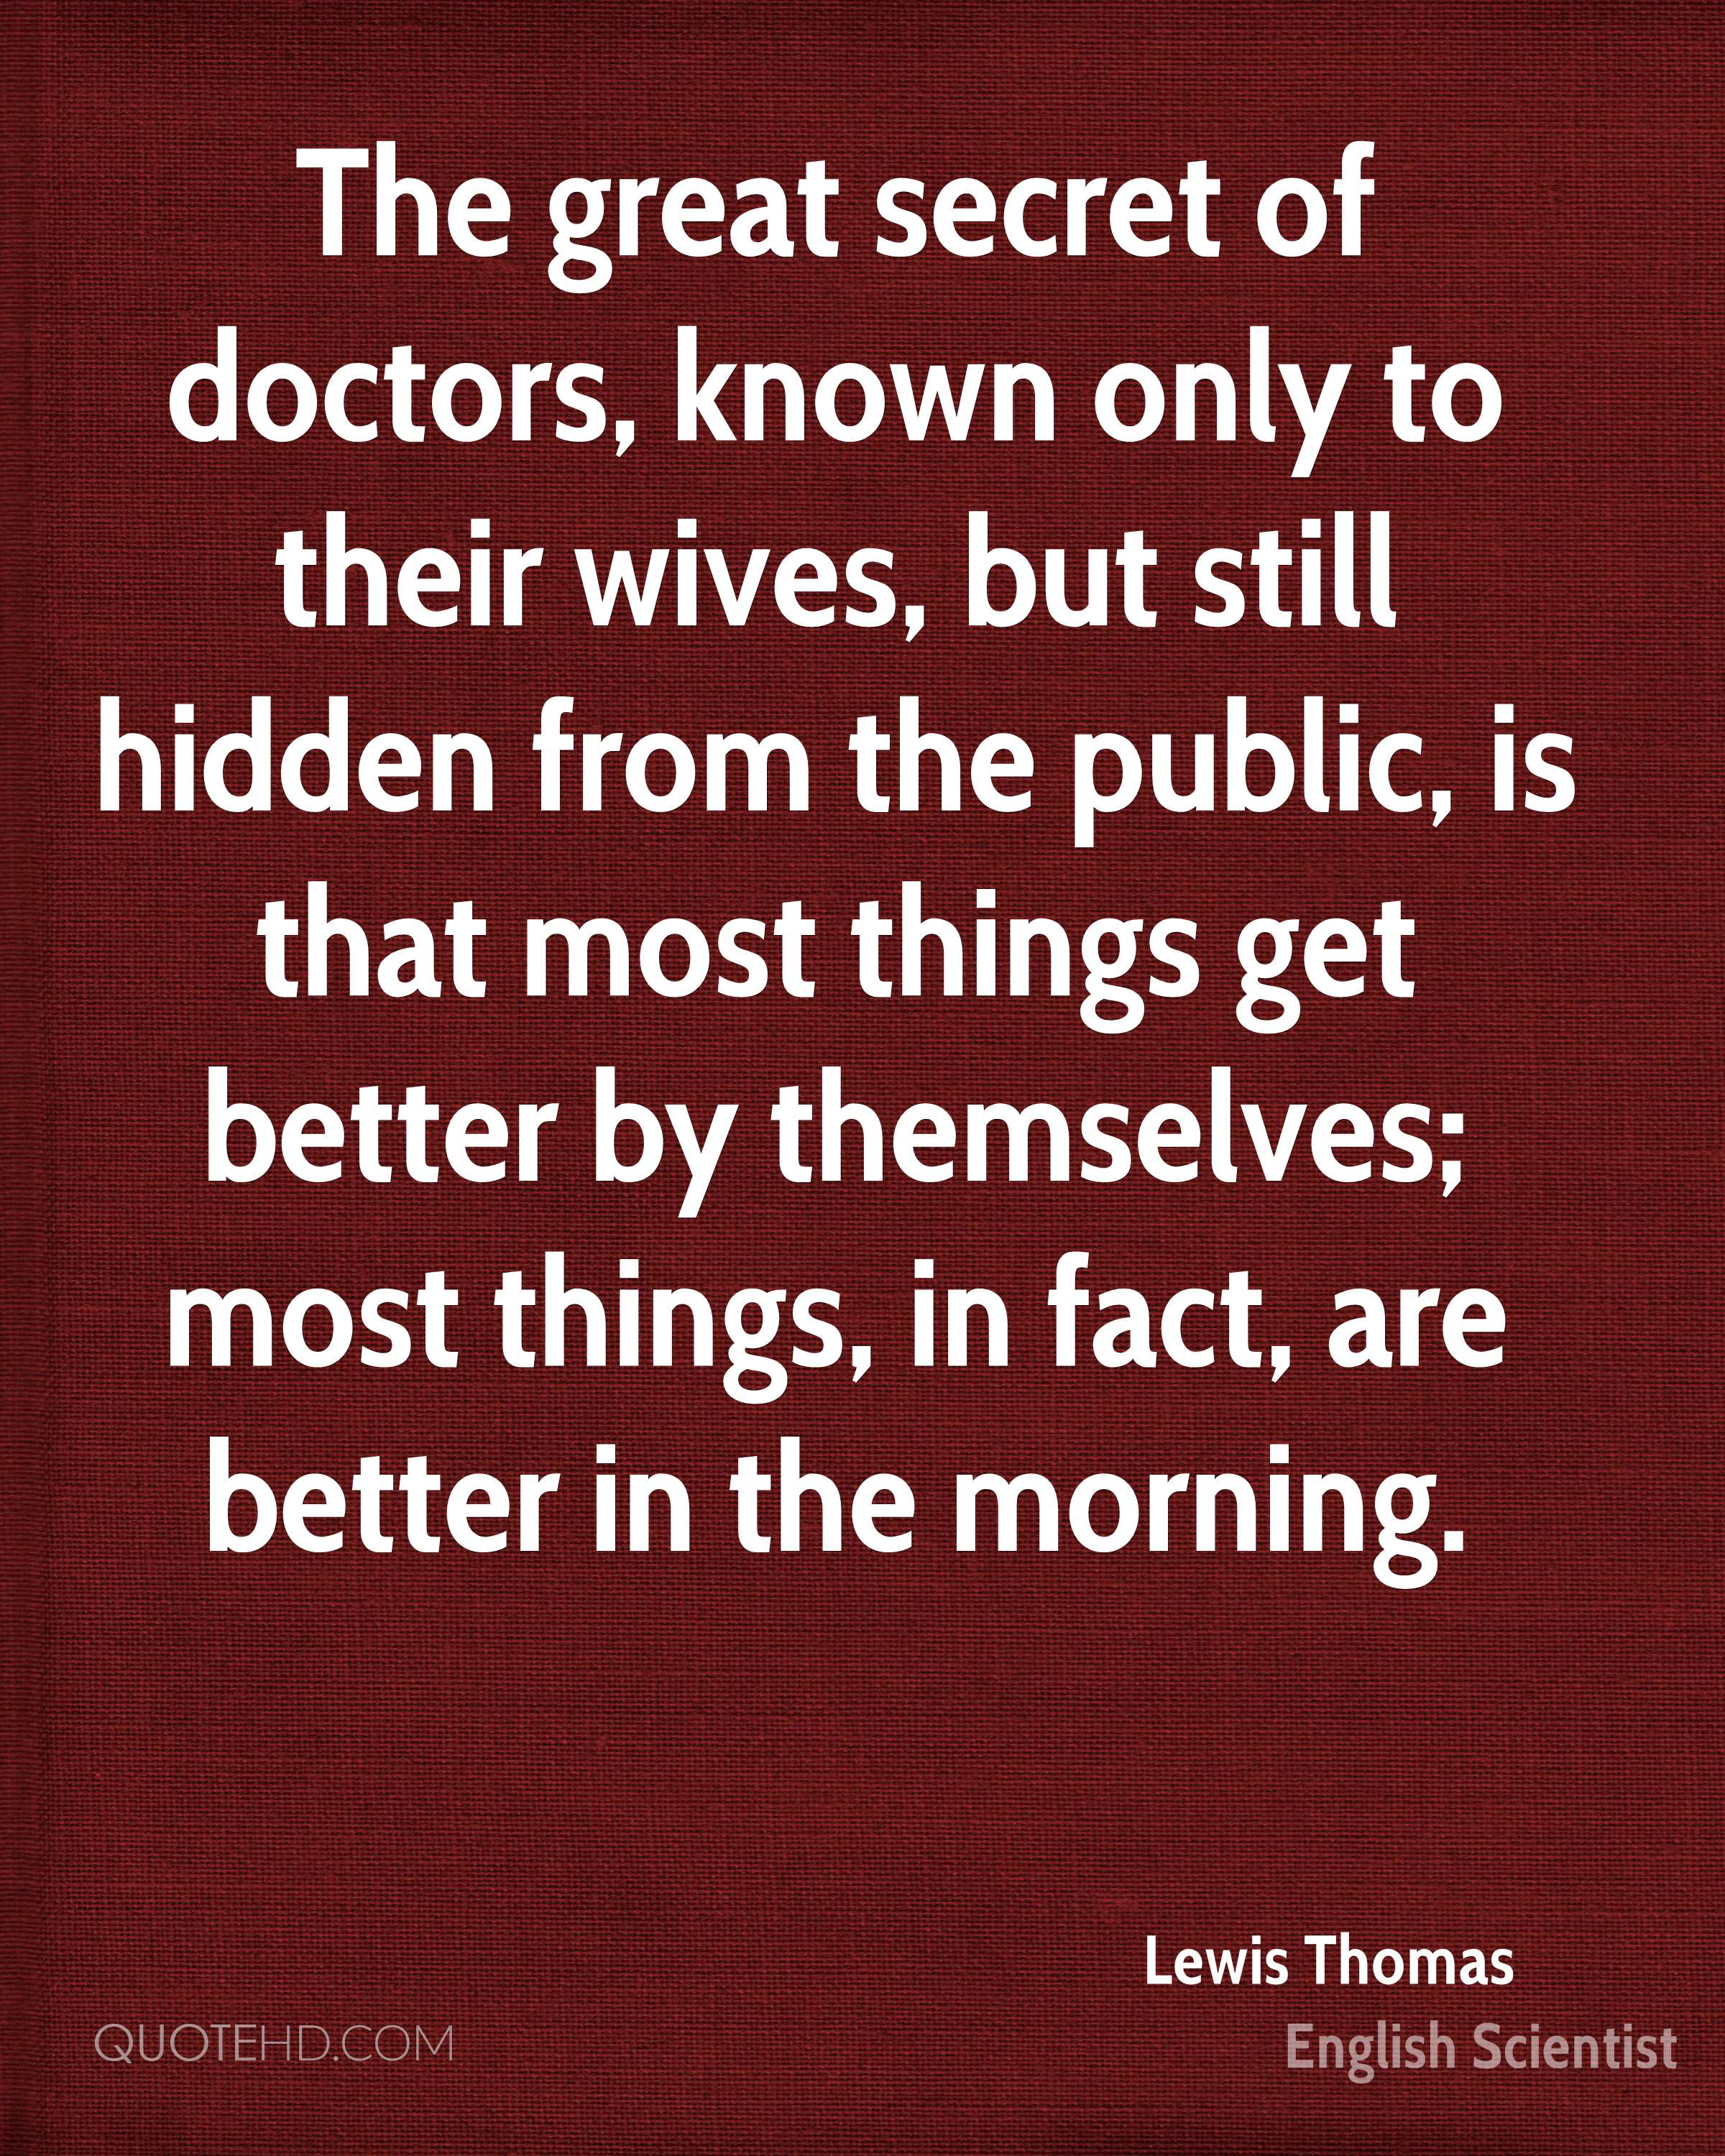 The great secret of doctors, known only to their wives, but still hidden from the public, is that most things get better by themselves; most things, in fact, are better in the morning.